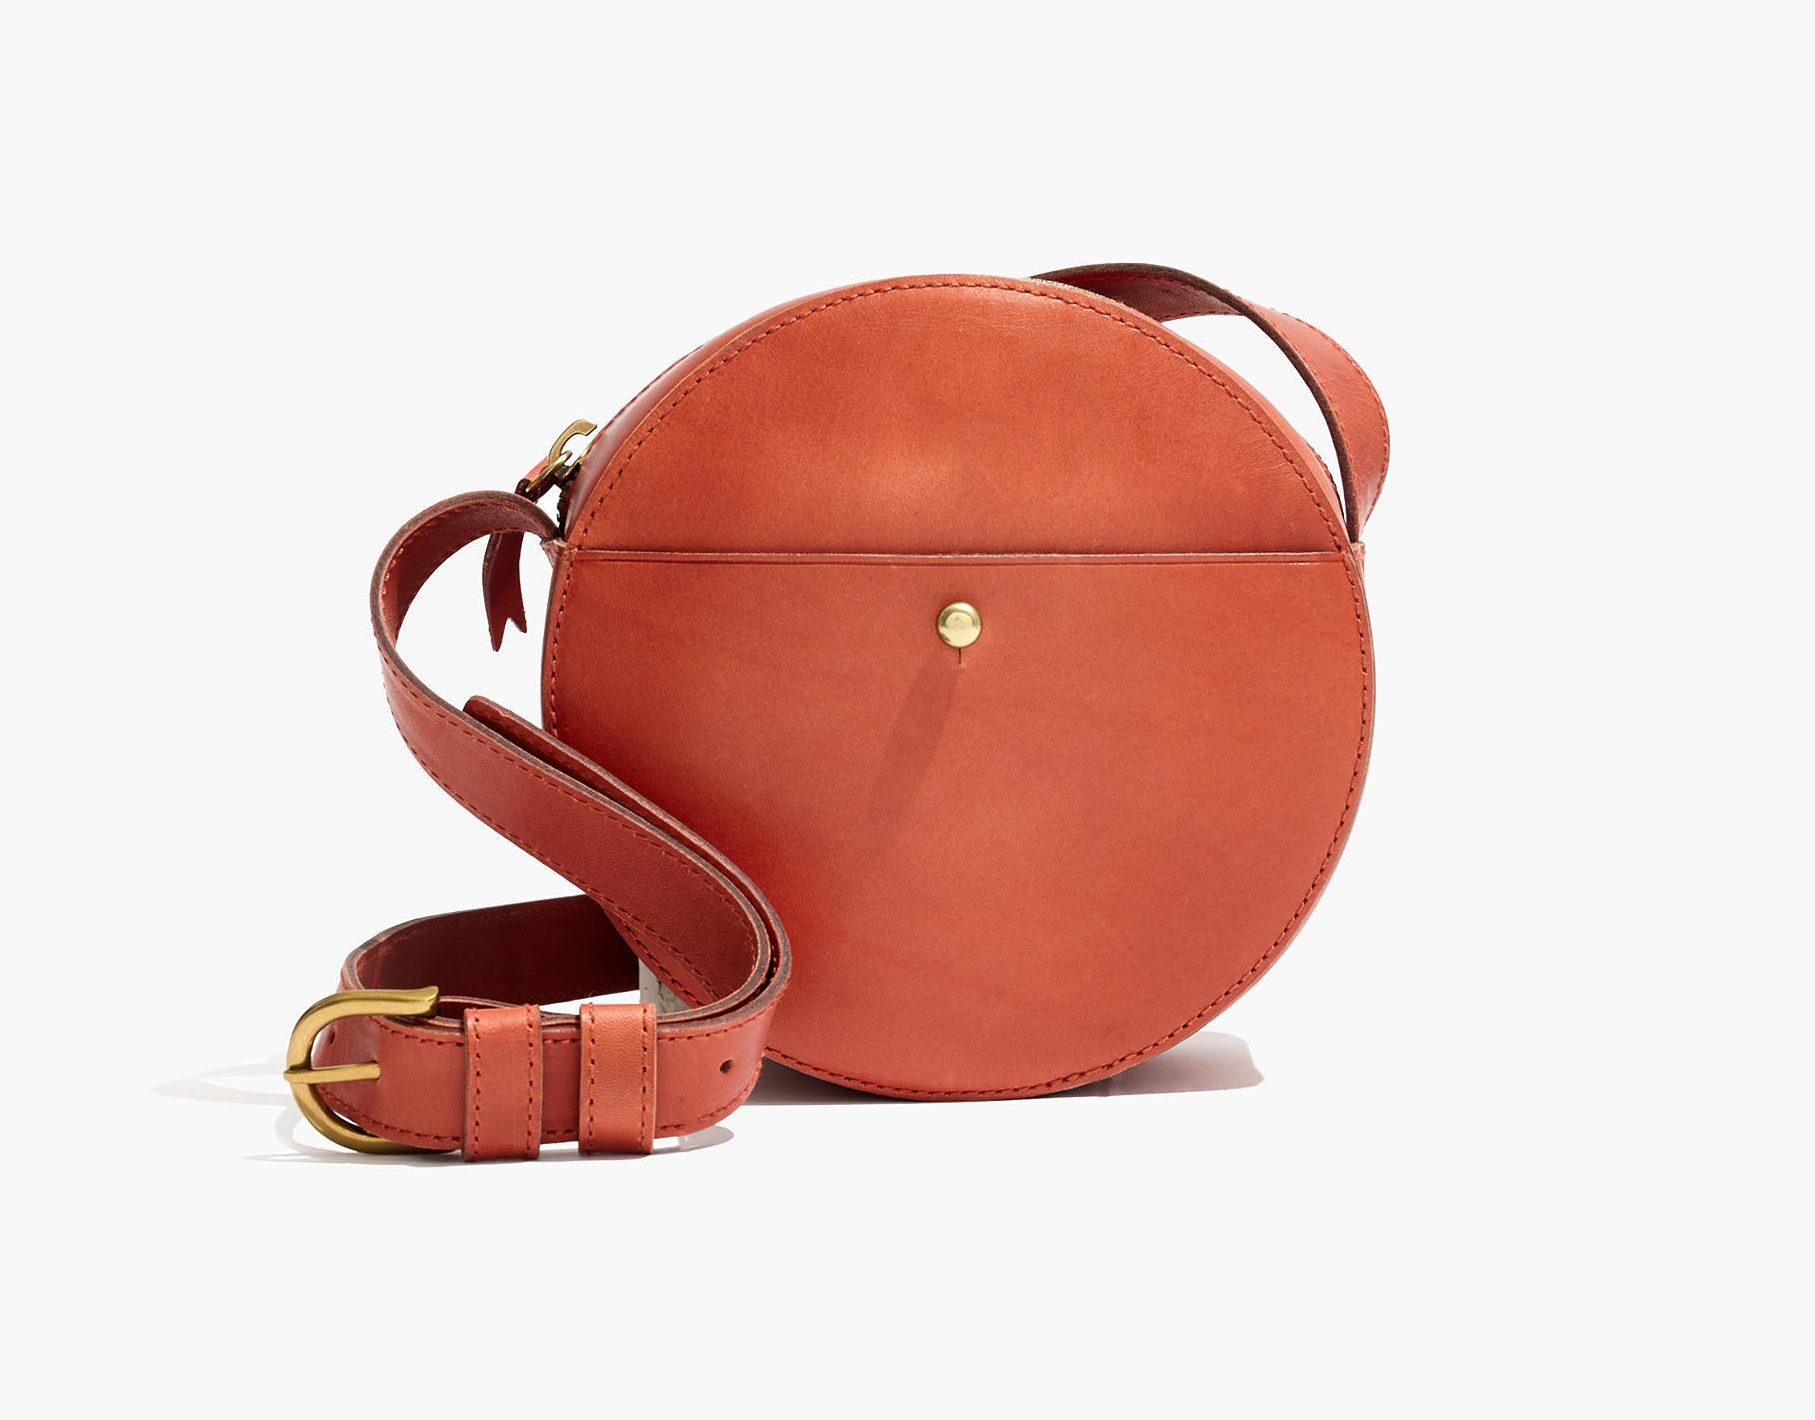 Madewell circle bag—Tuesday trifecta